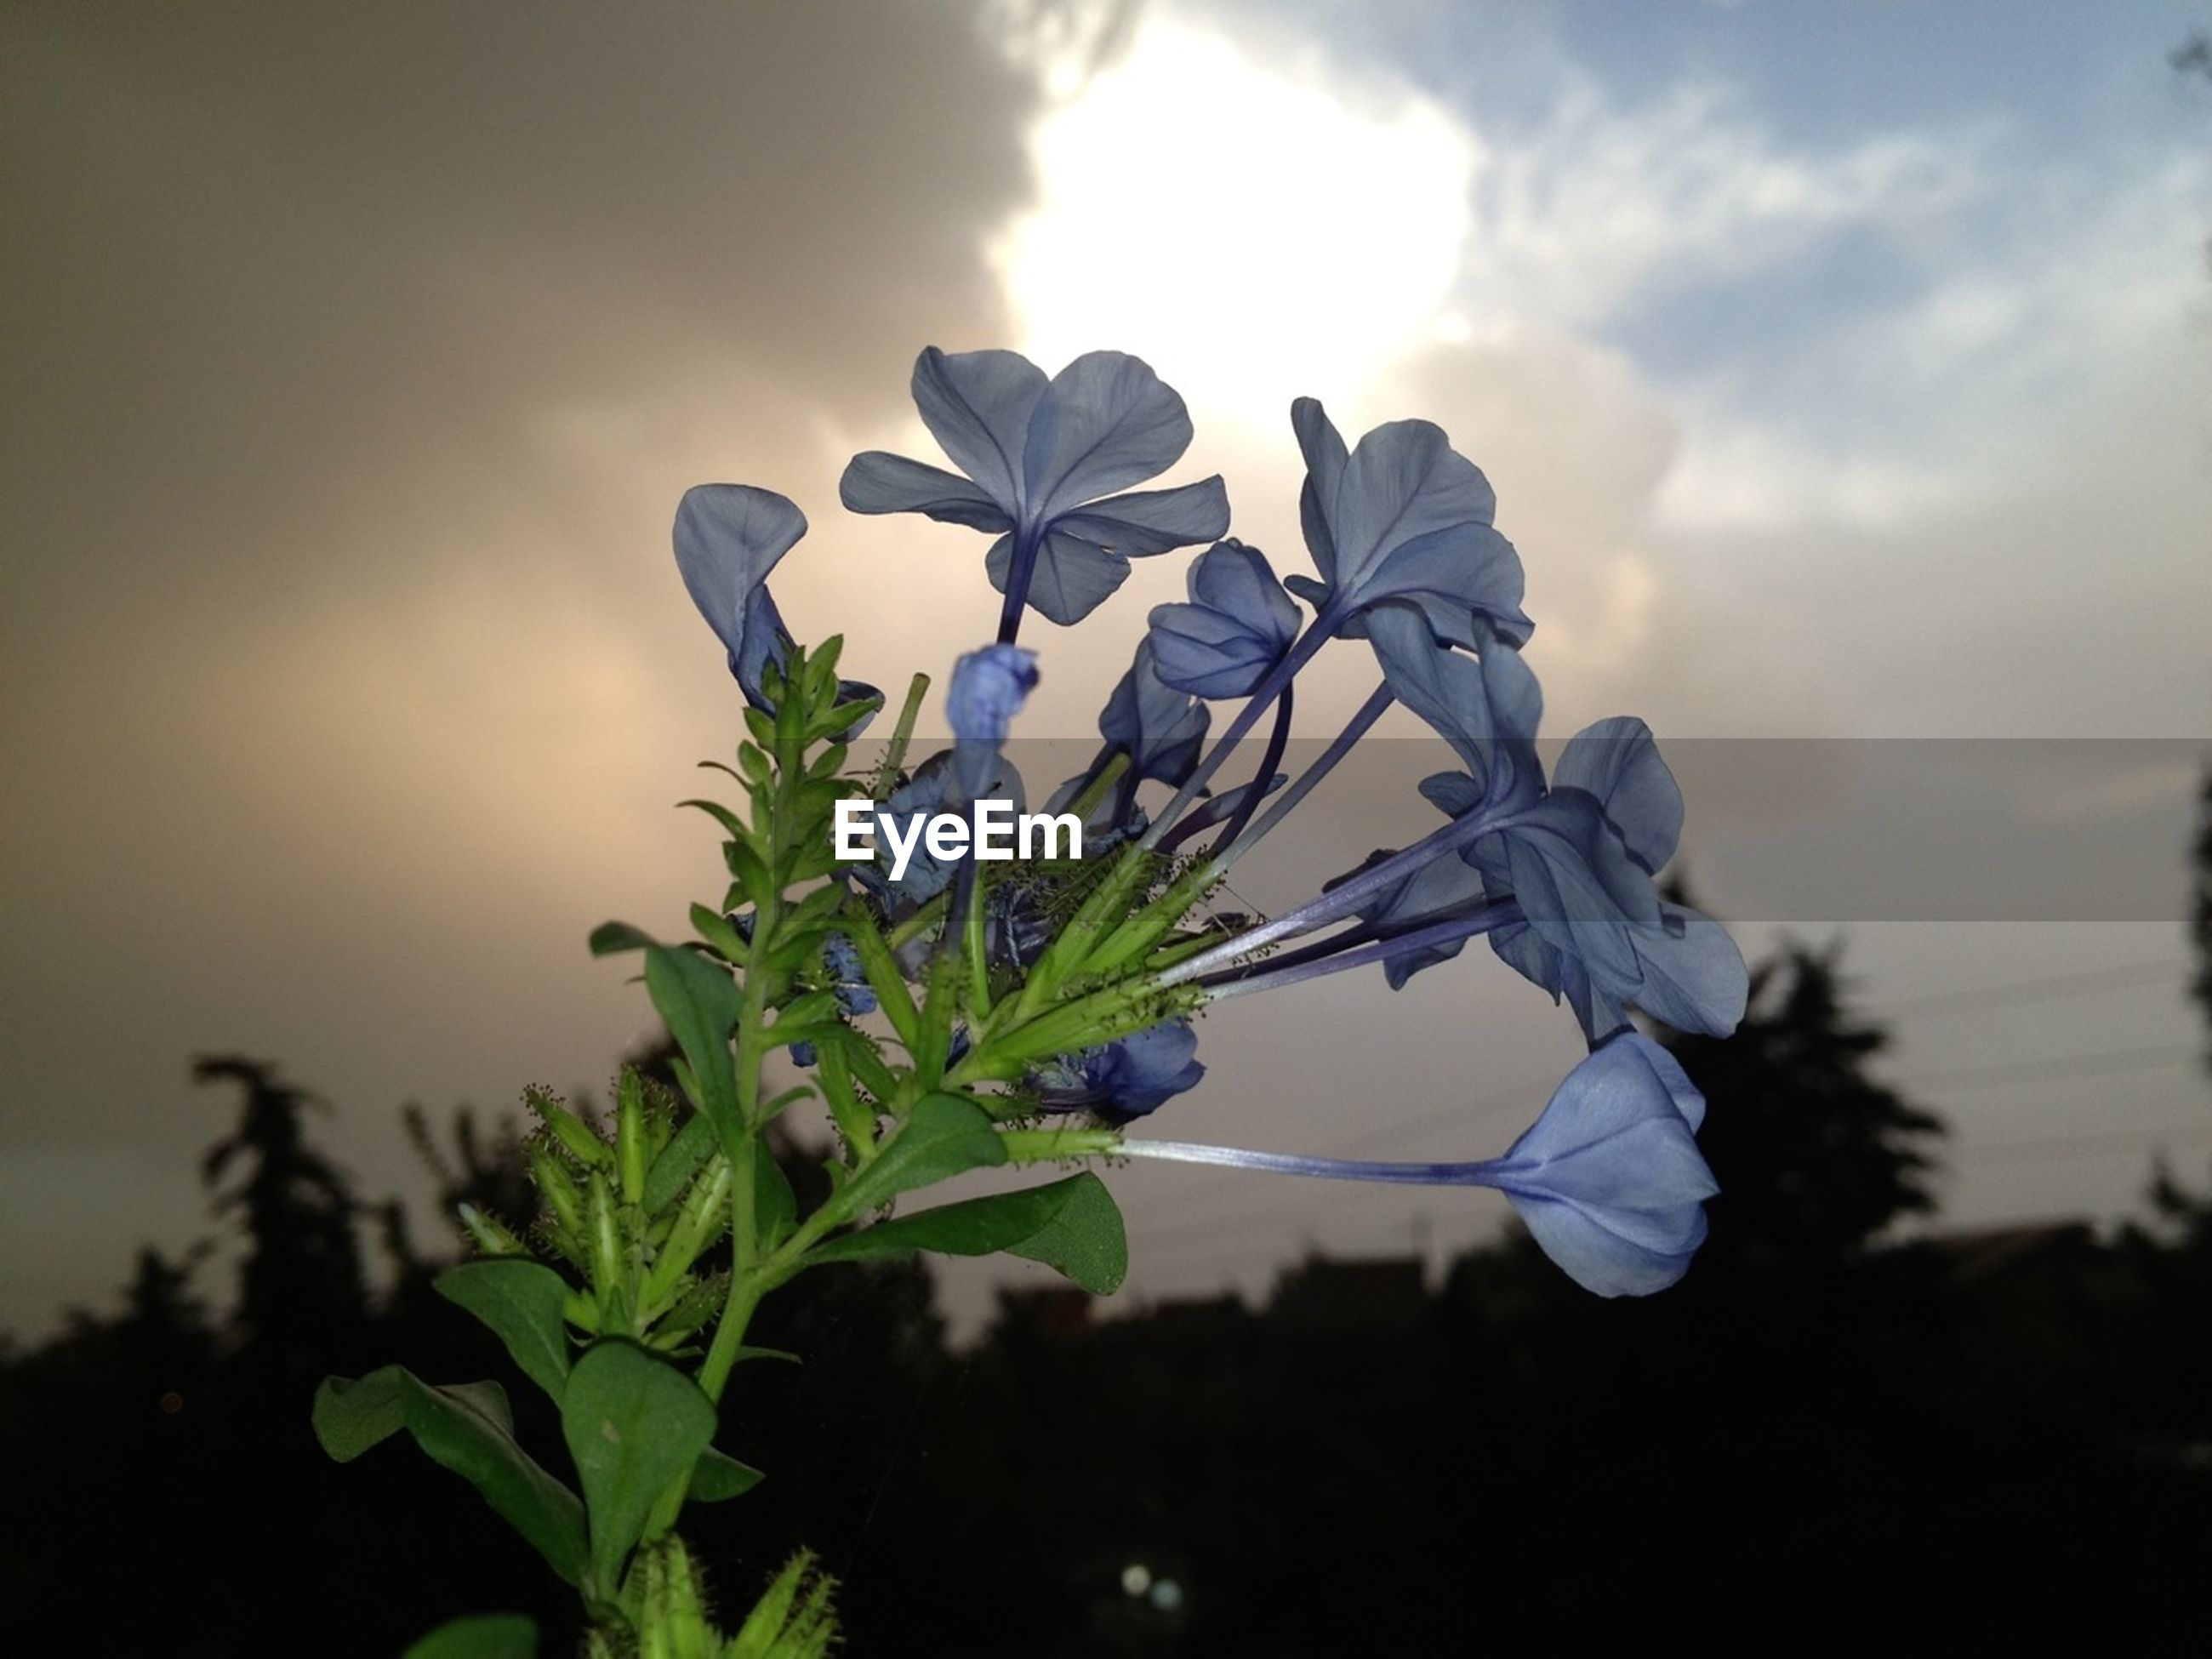 flower, growth, fragility, freshness, plant, petal, stem, sky, beauty in nature, leaf, nature, flower head, focus on foreground, close-up, blooming, bud, in bloom, cloud - sky, blossom, low angle view